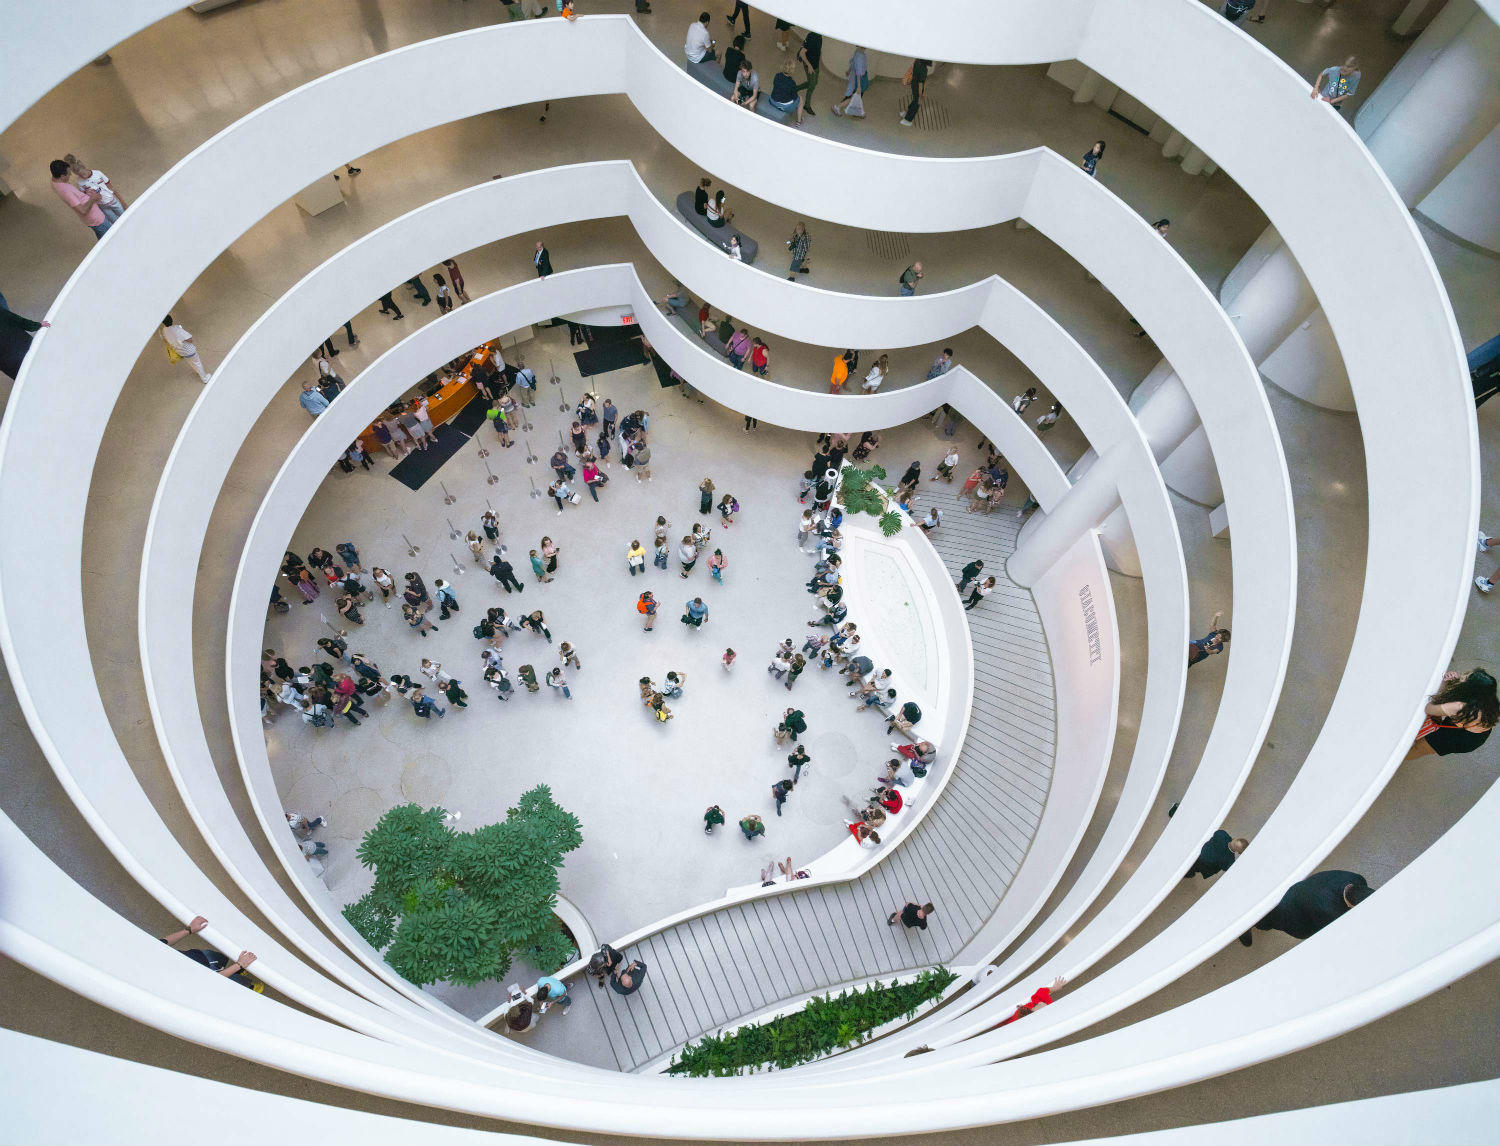 Guggenheim Museum New York Tickets | New York Explorer Pass